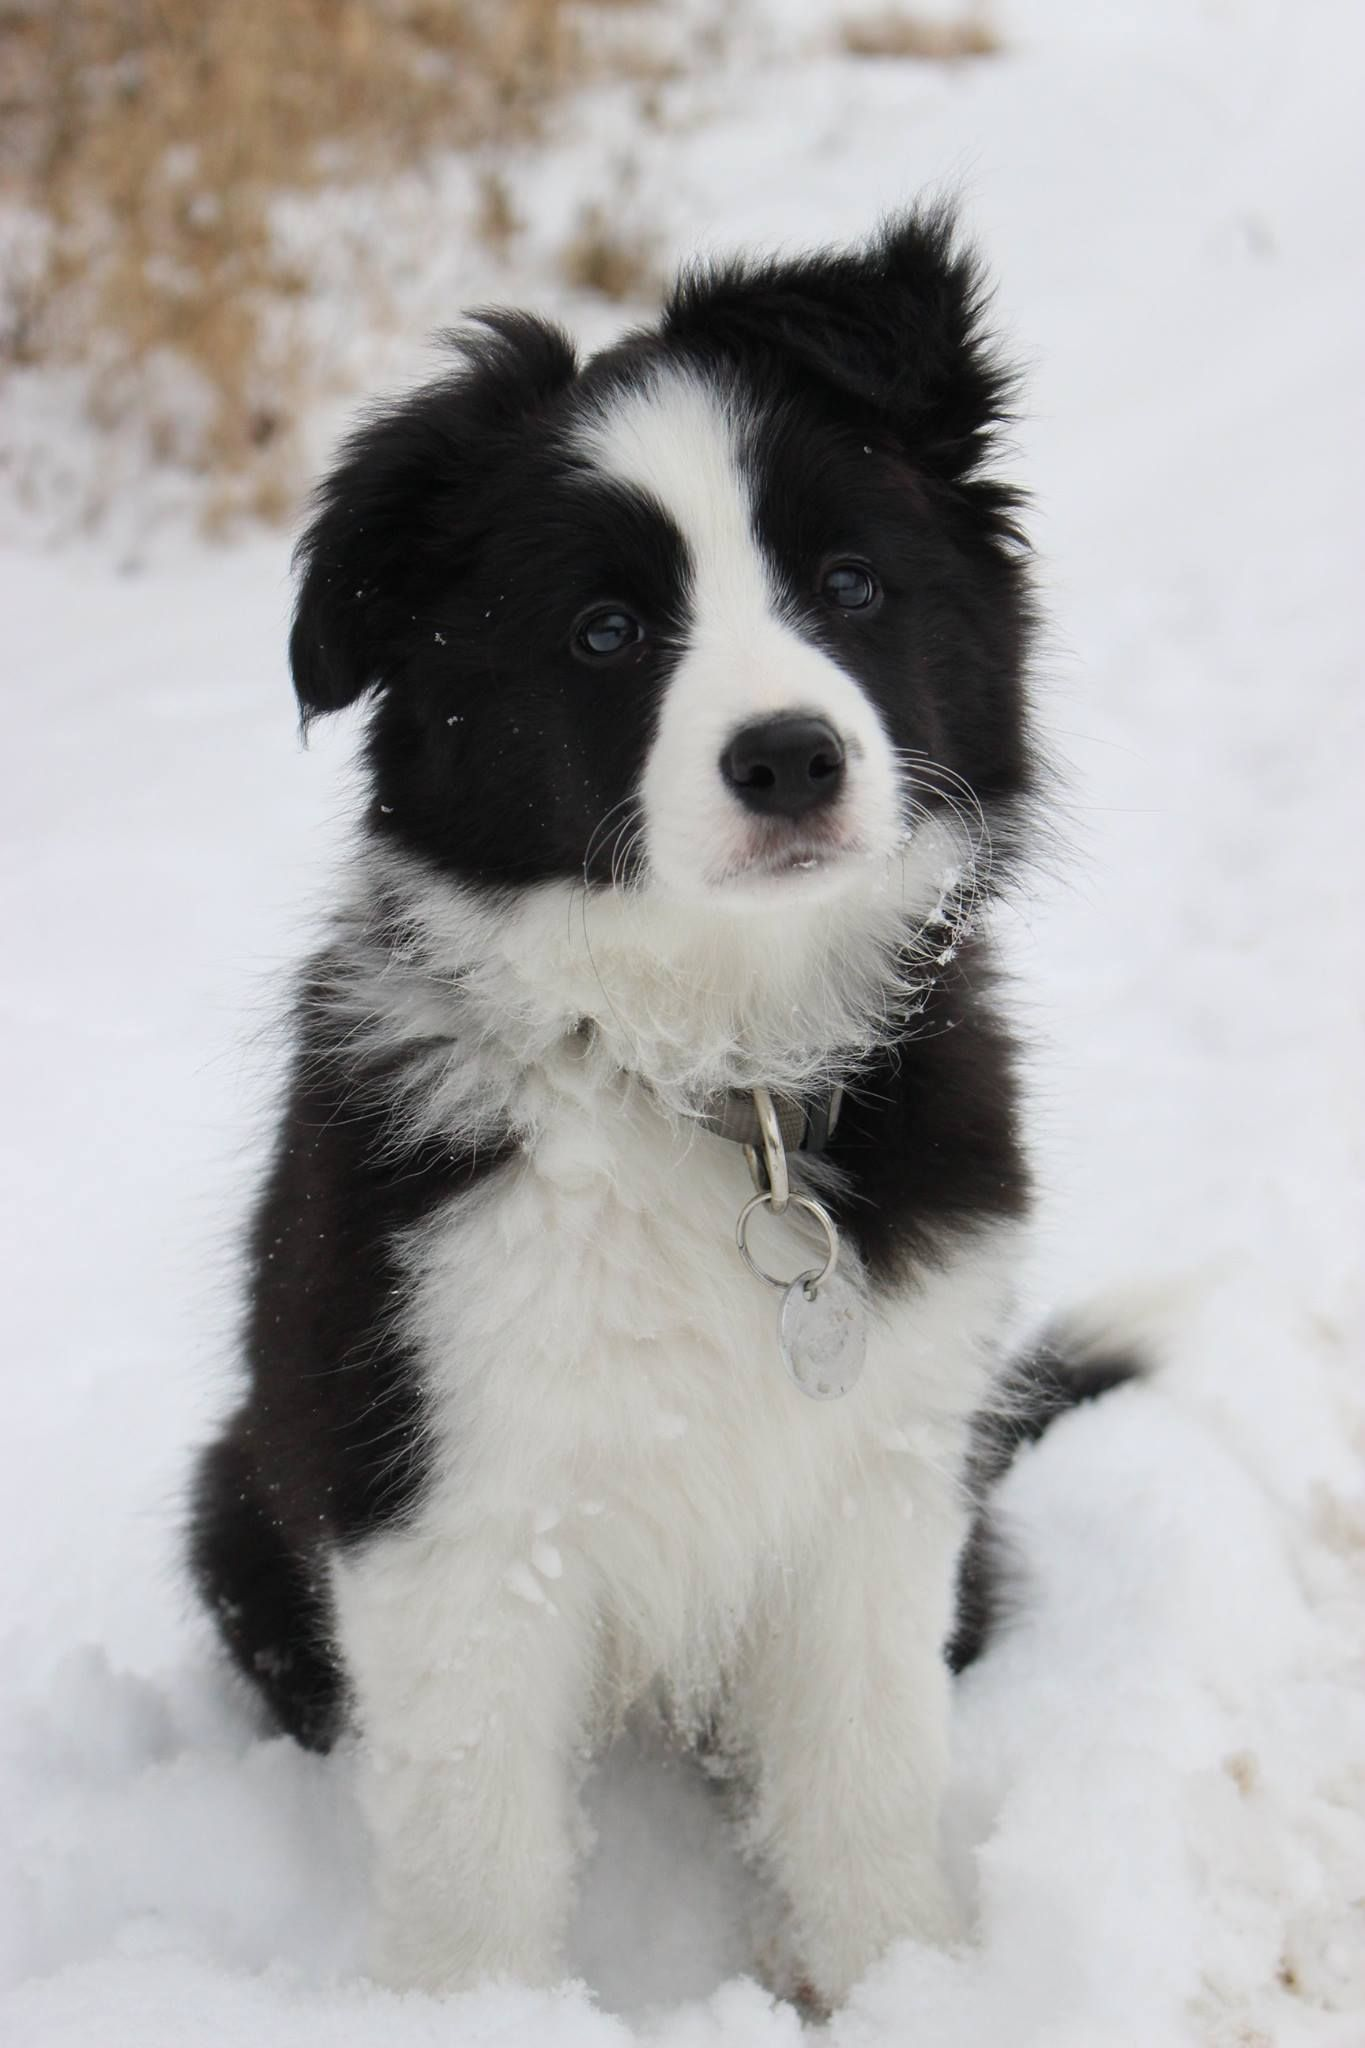 Snow Snow Black White Snow Snow Amy Amytheboc Puppy Somuchsnow Border Collie Dog Border Collie Puppies Collie Puppies